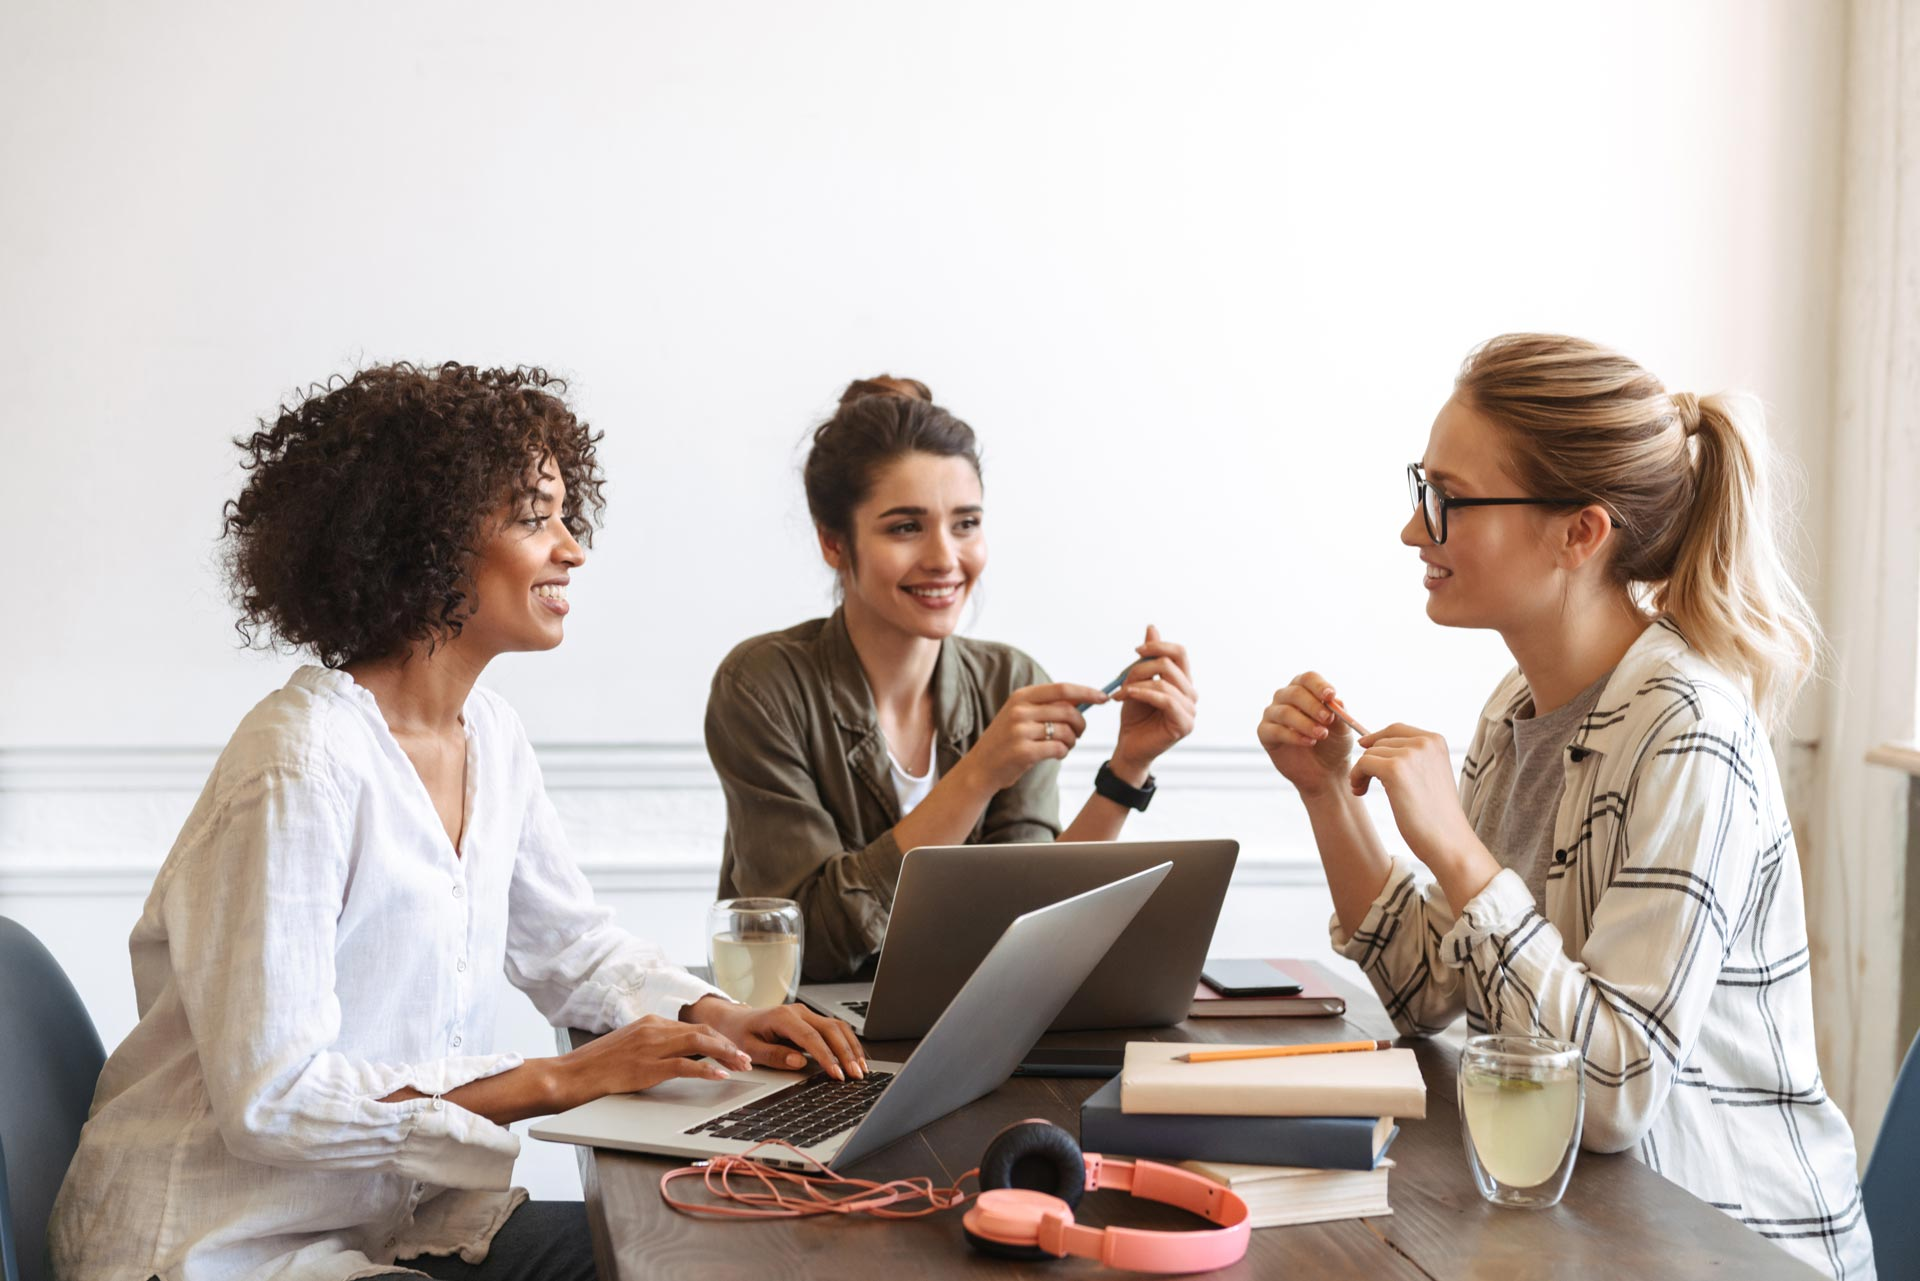 group-of-cheerful-young-women-studying-together-AHK5QF2.jpg